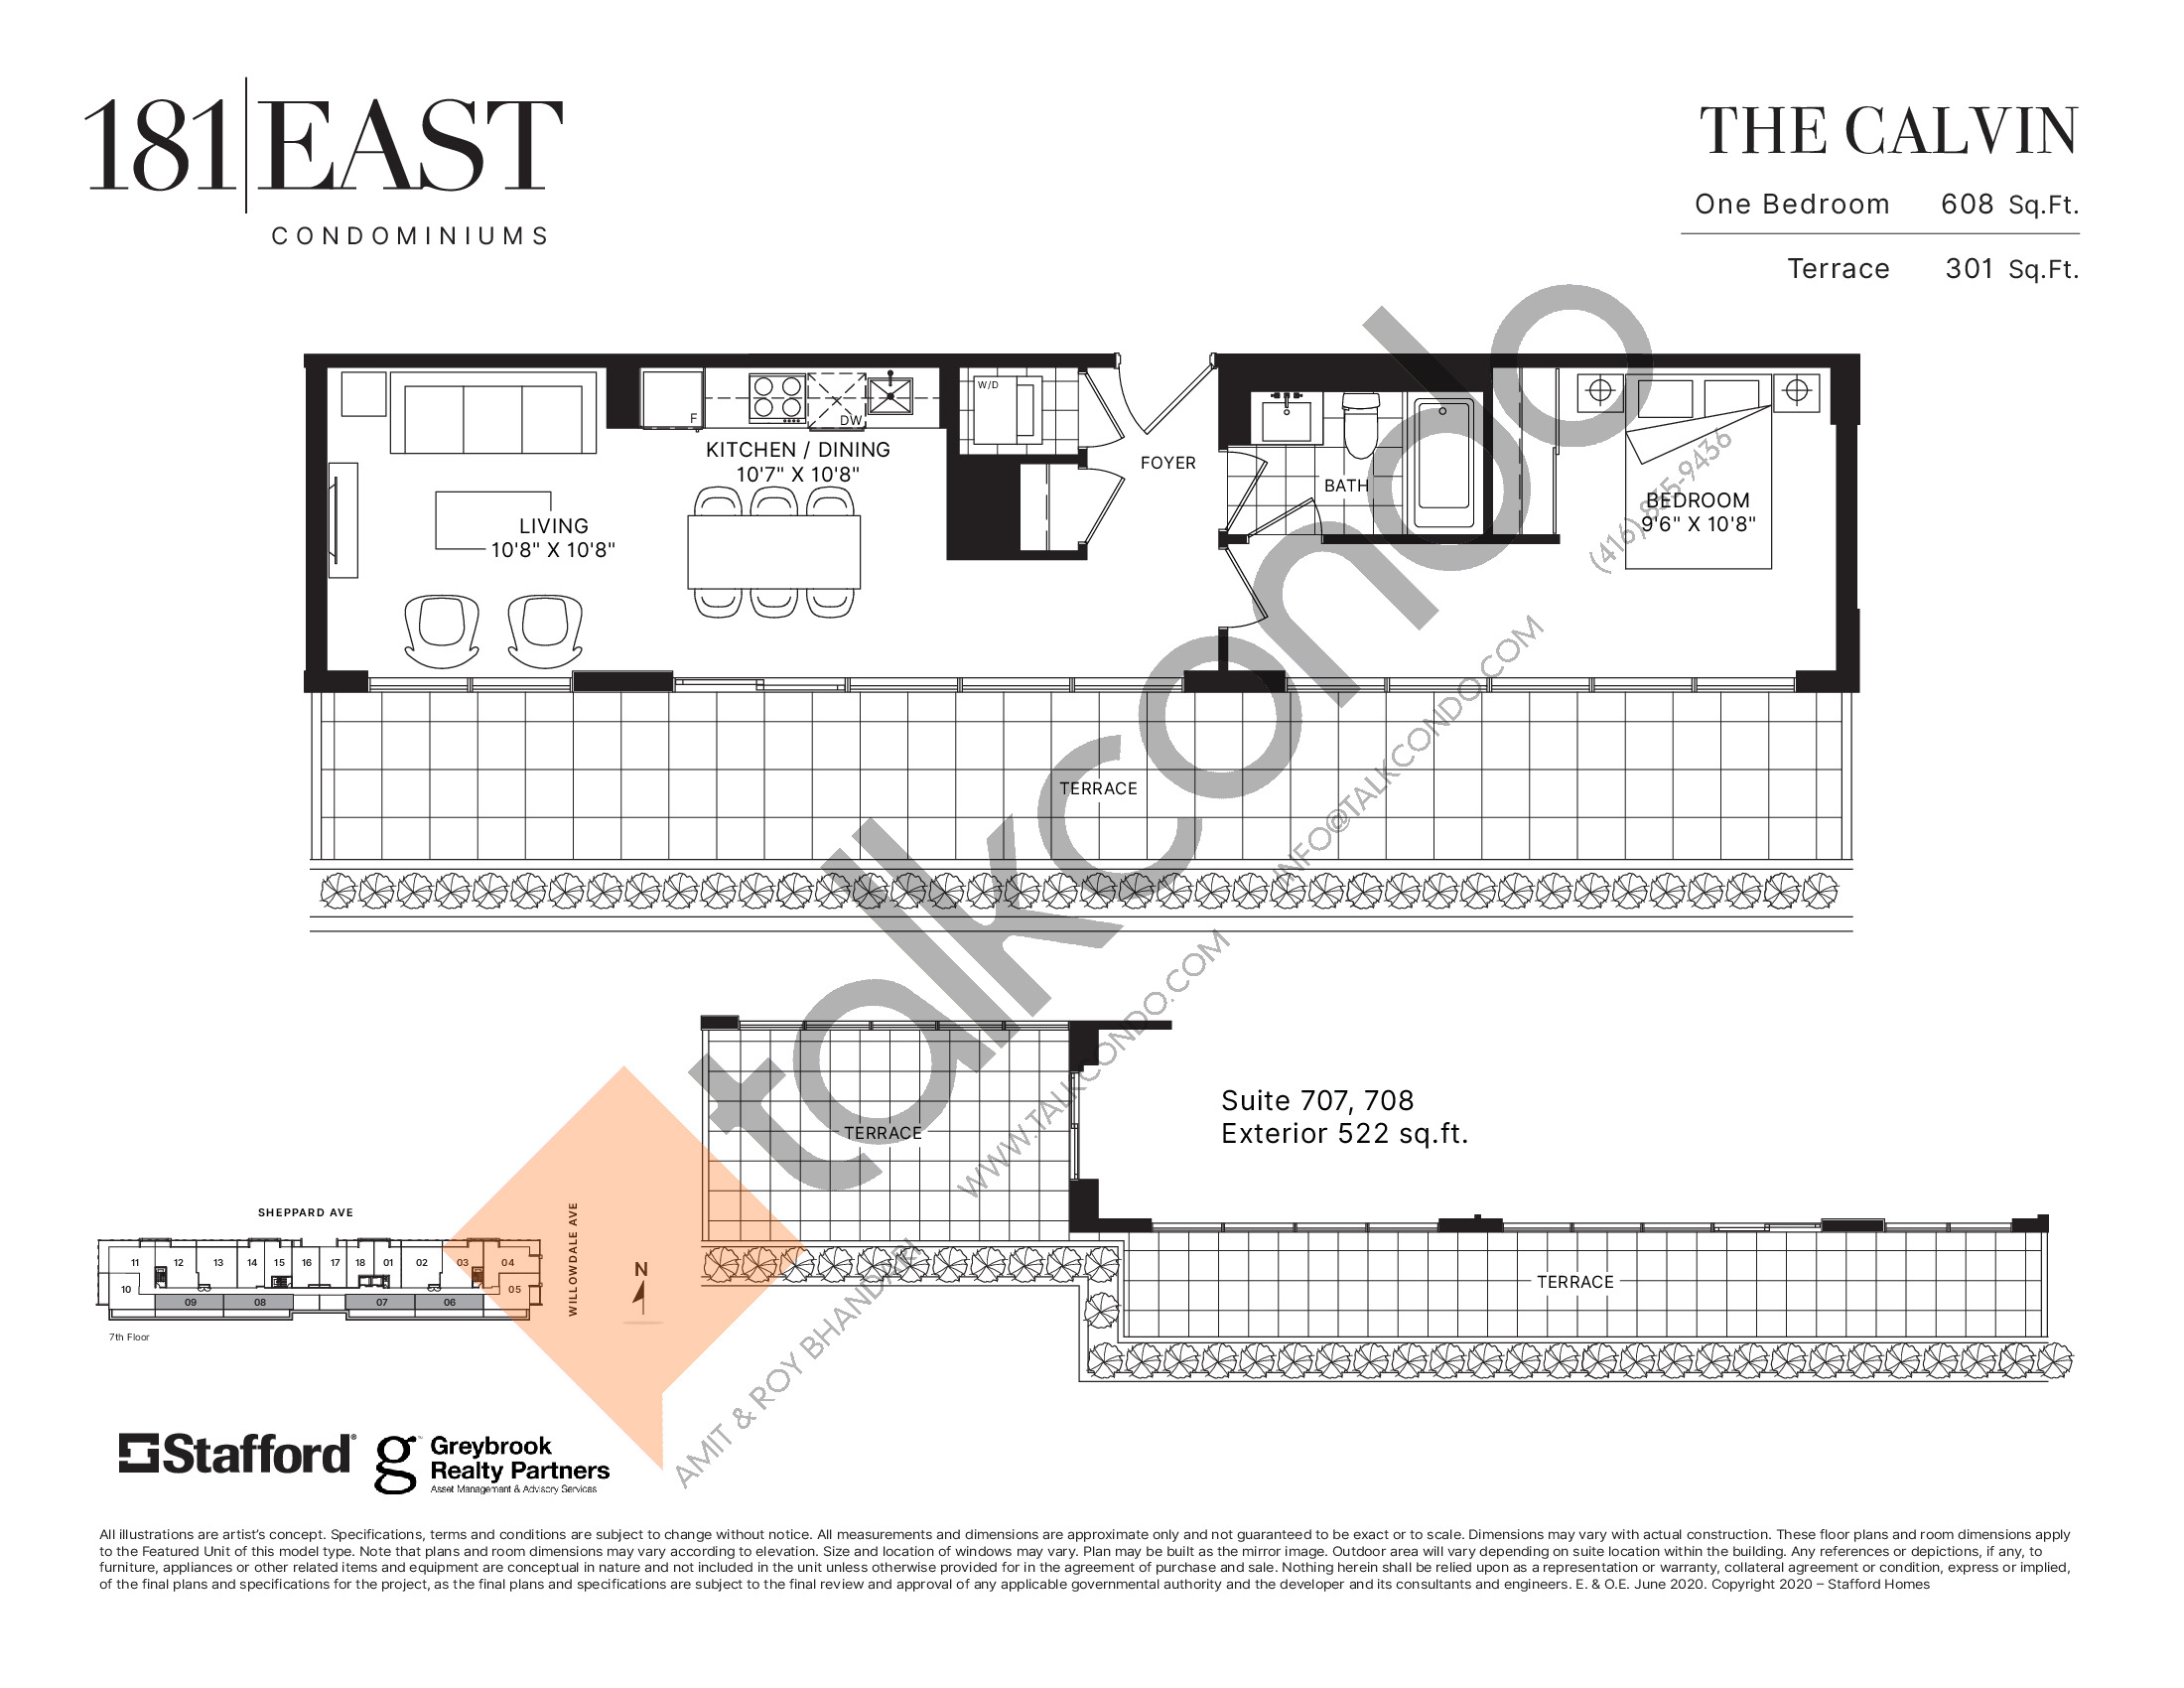 The Calvin Floor Plan at 181 East Condos - 608 sq.ft